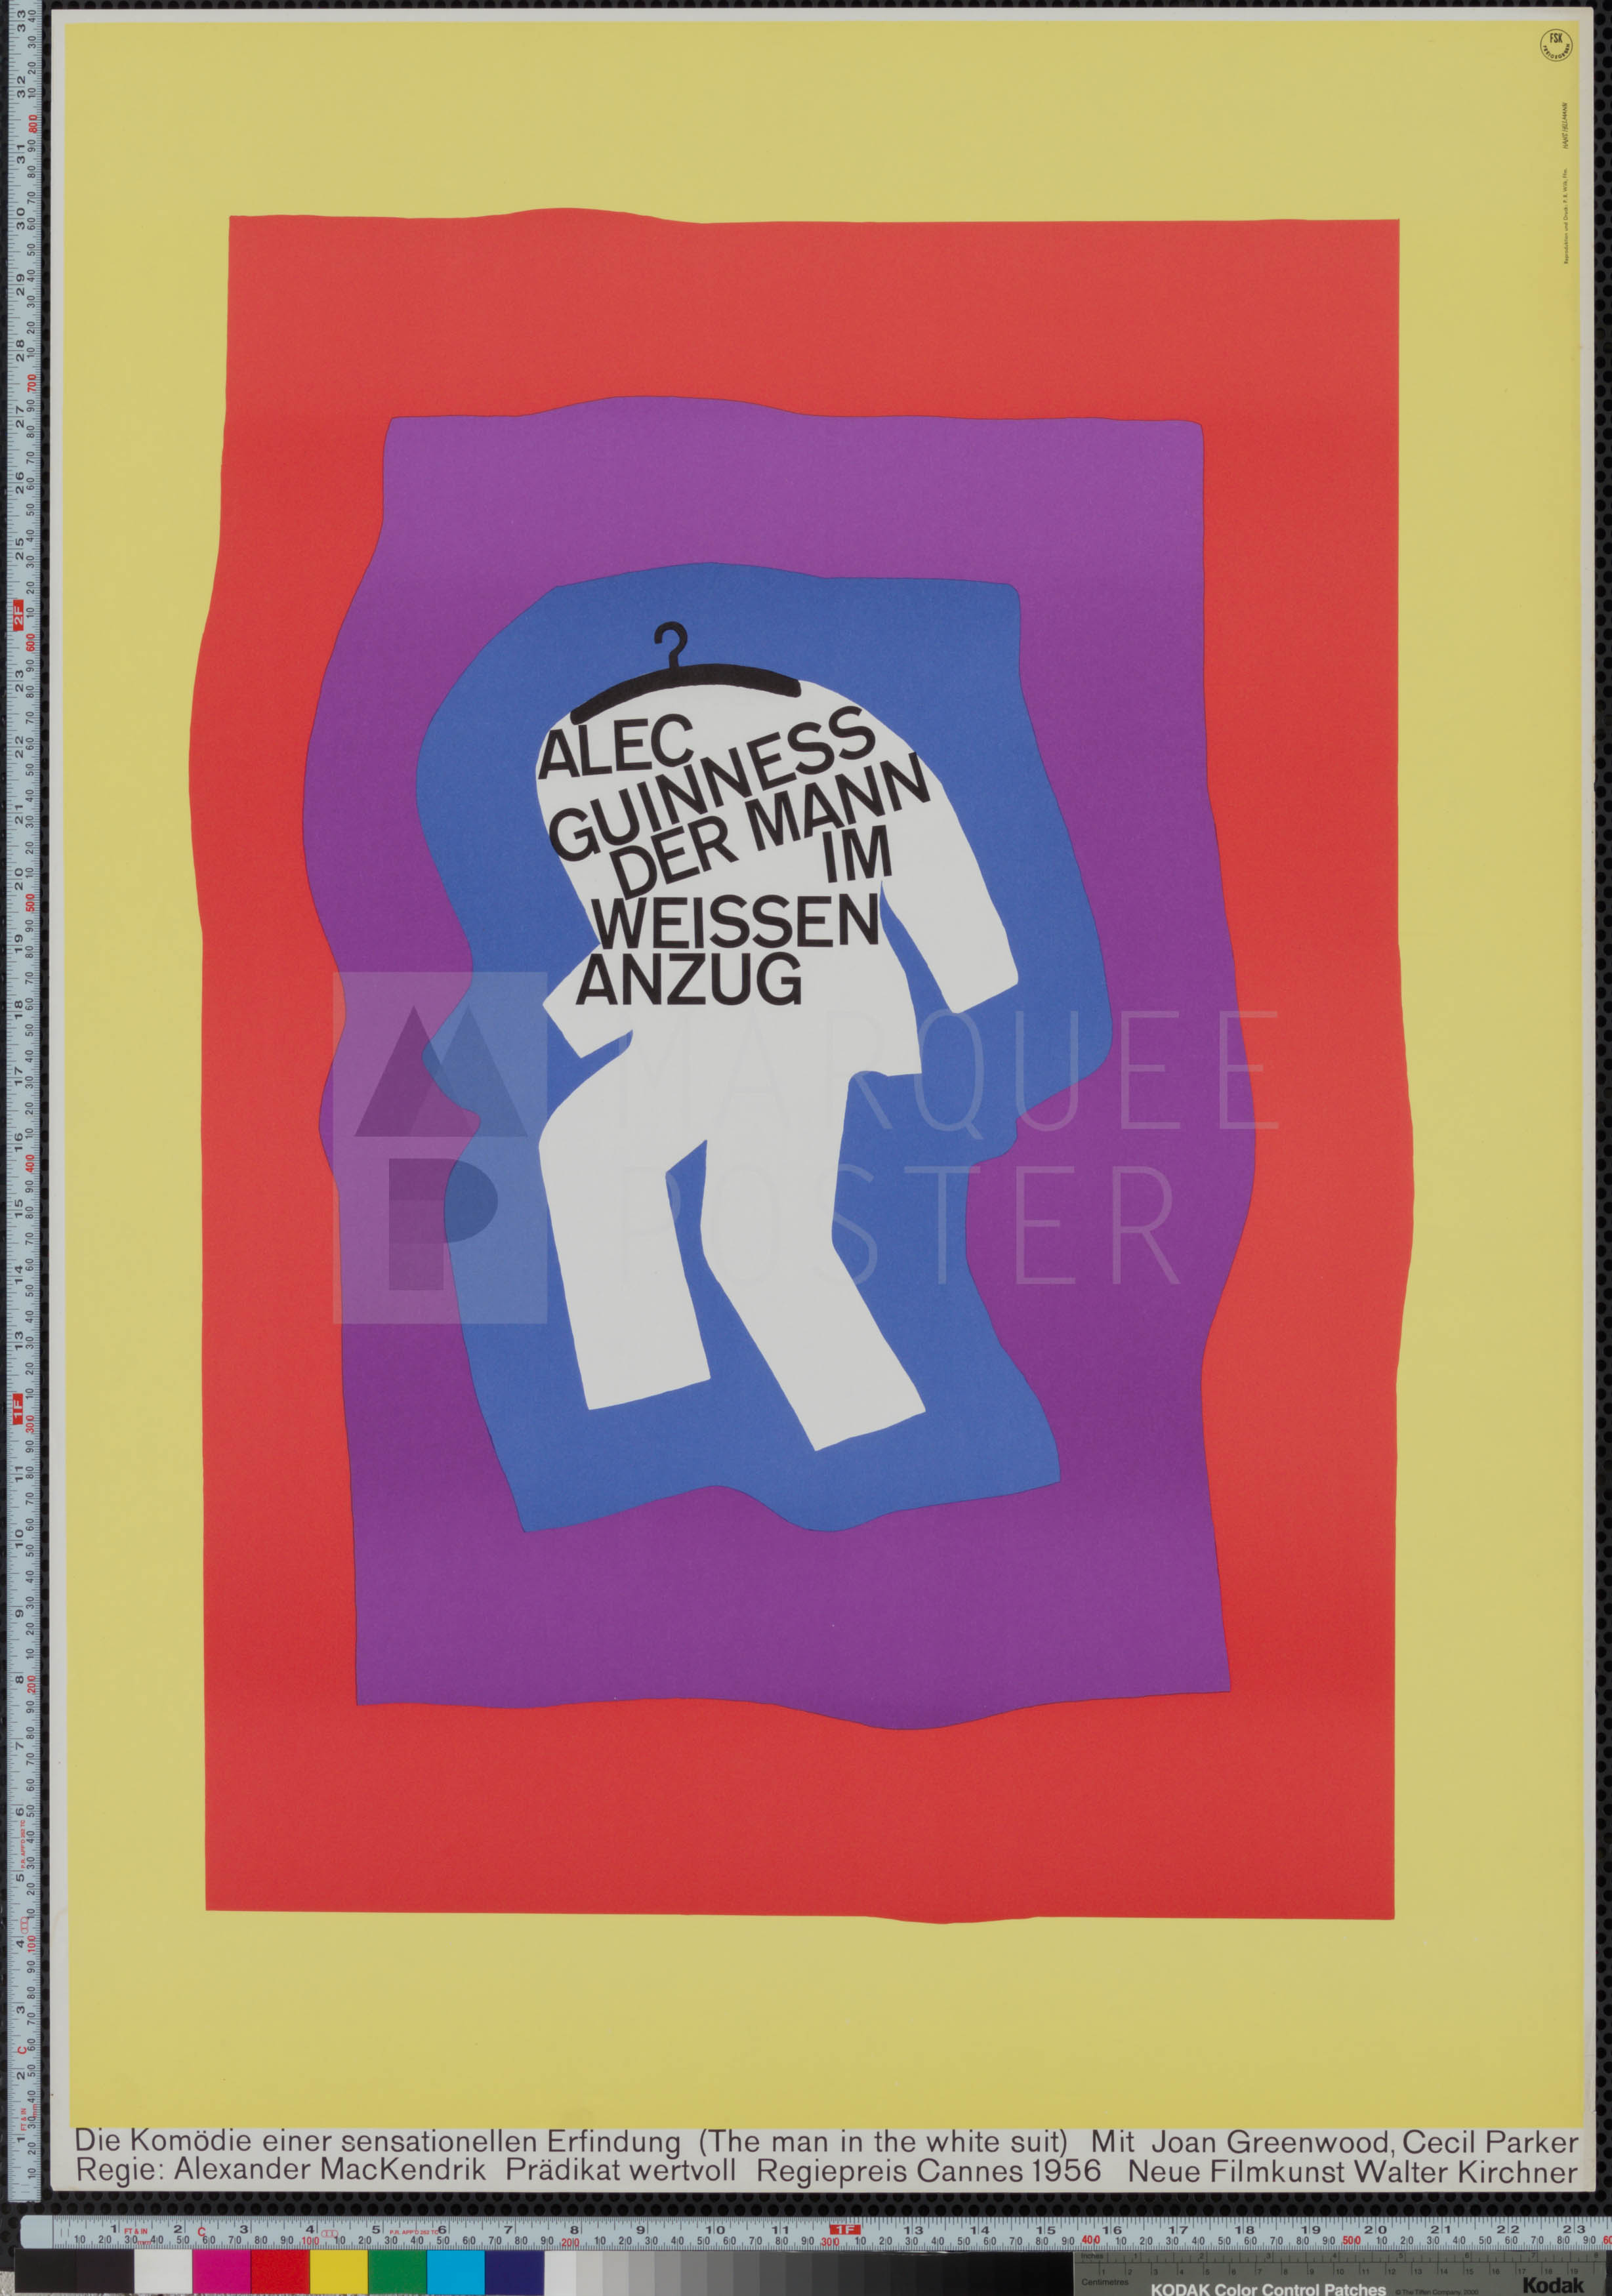 21-man-in-the-white-suit-re-release-german-a1-1970s-02-8